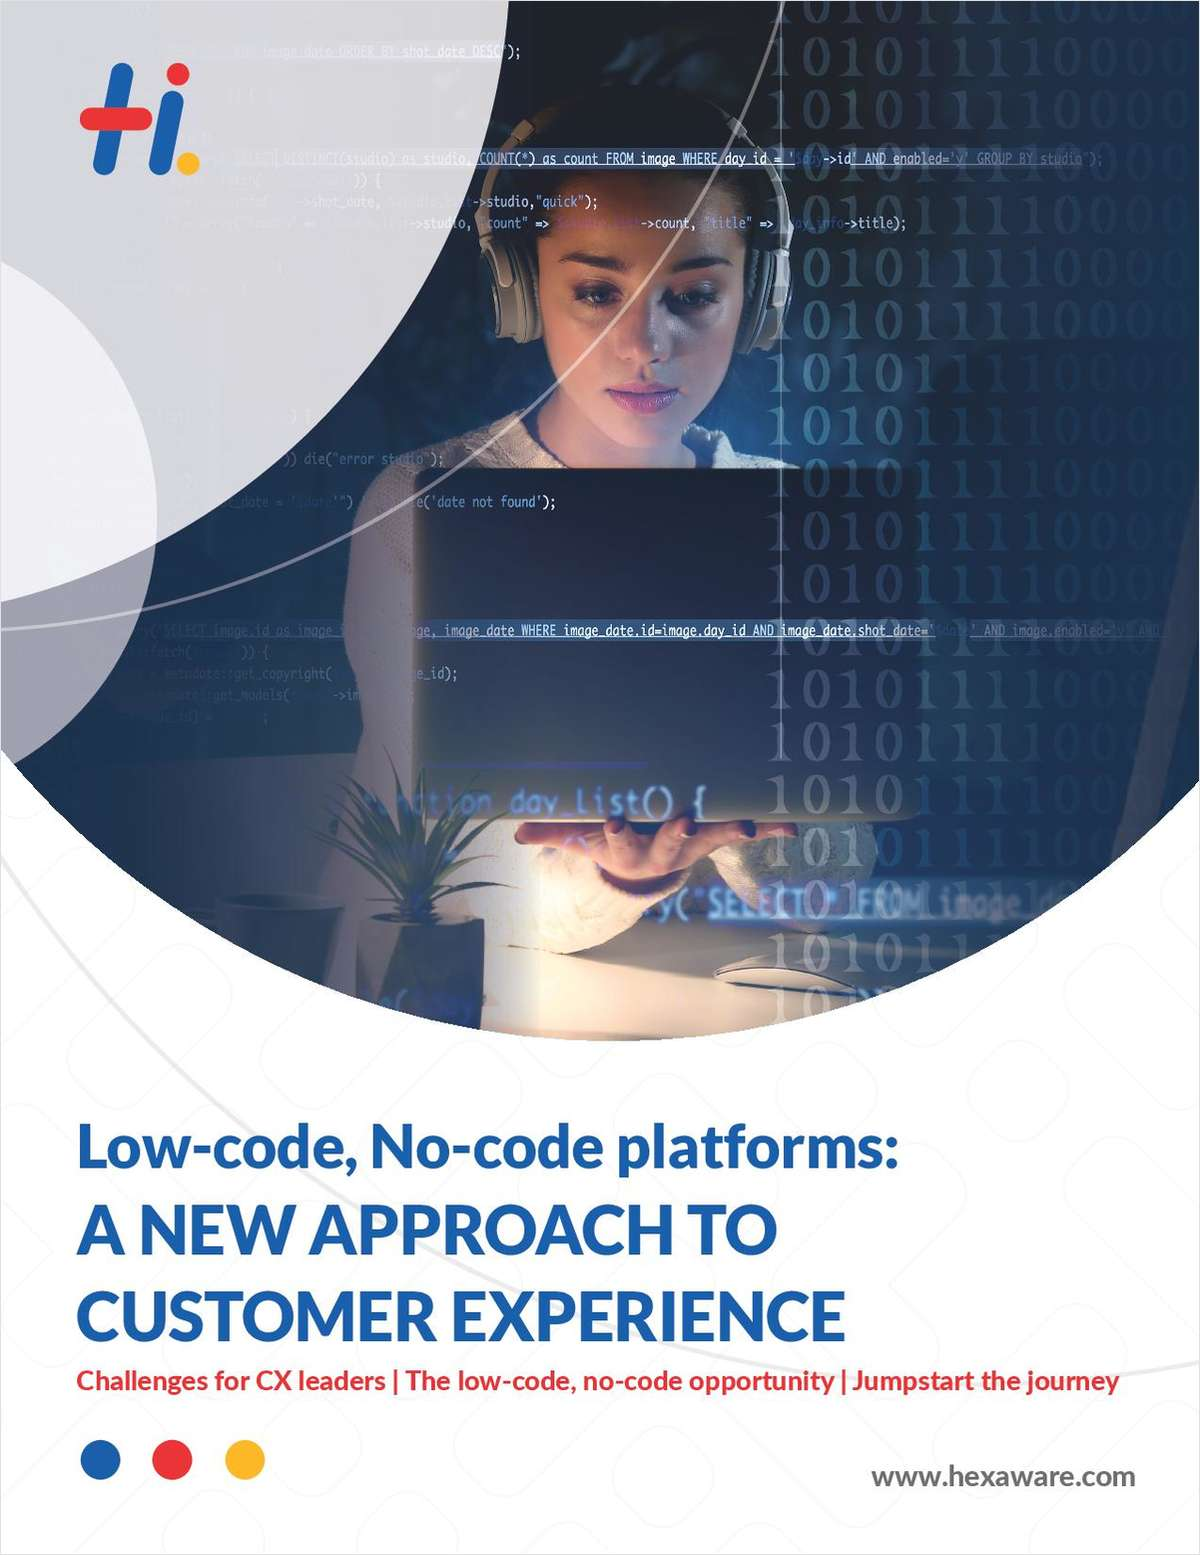 Low-code, No-code platforms: A New approach to Customer Experience